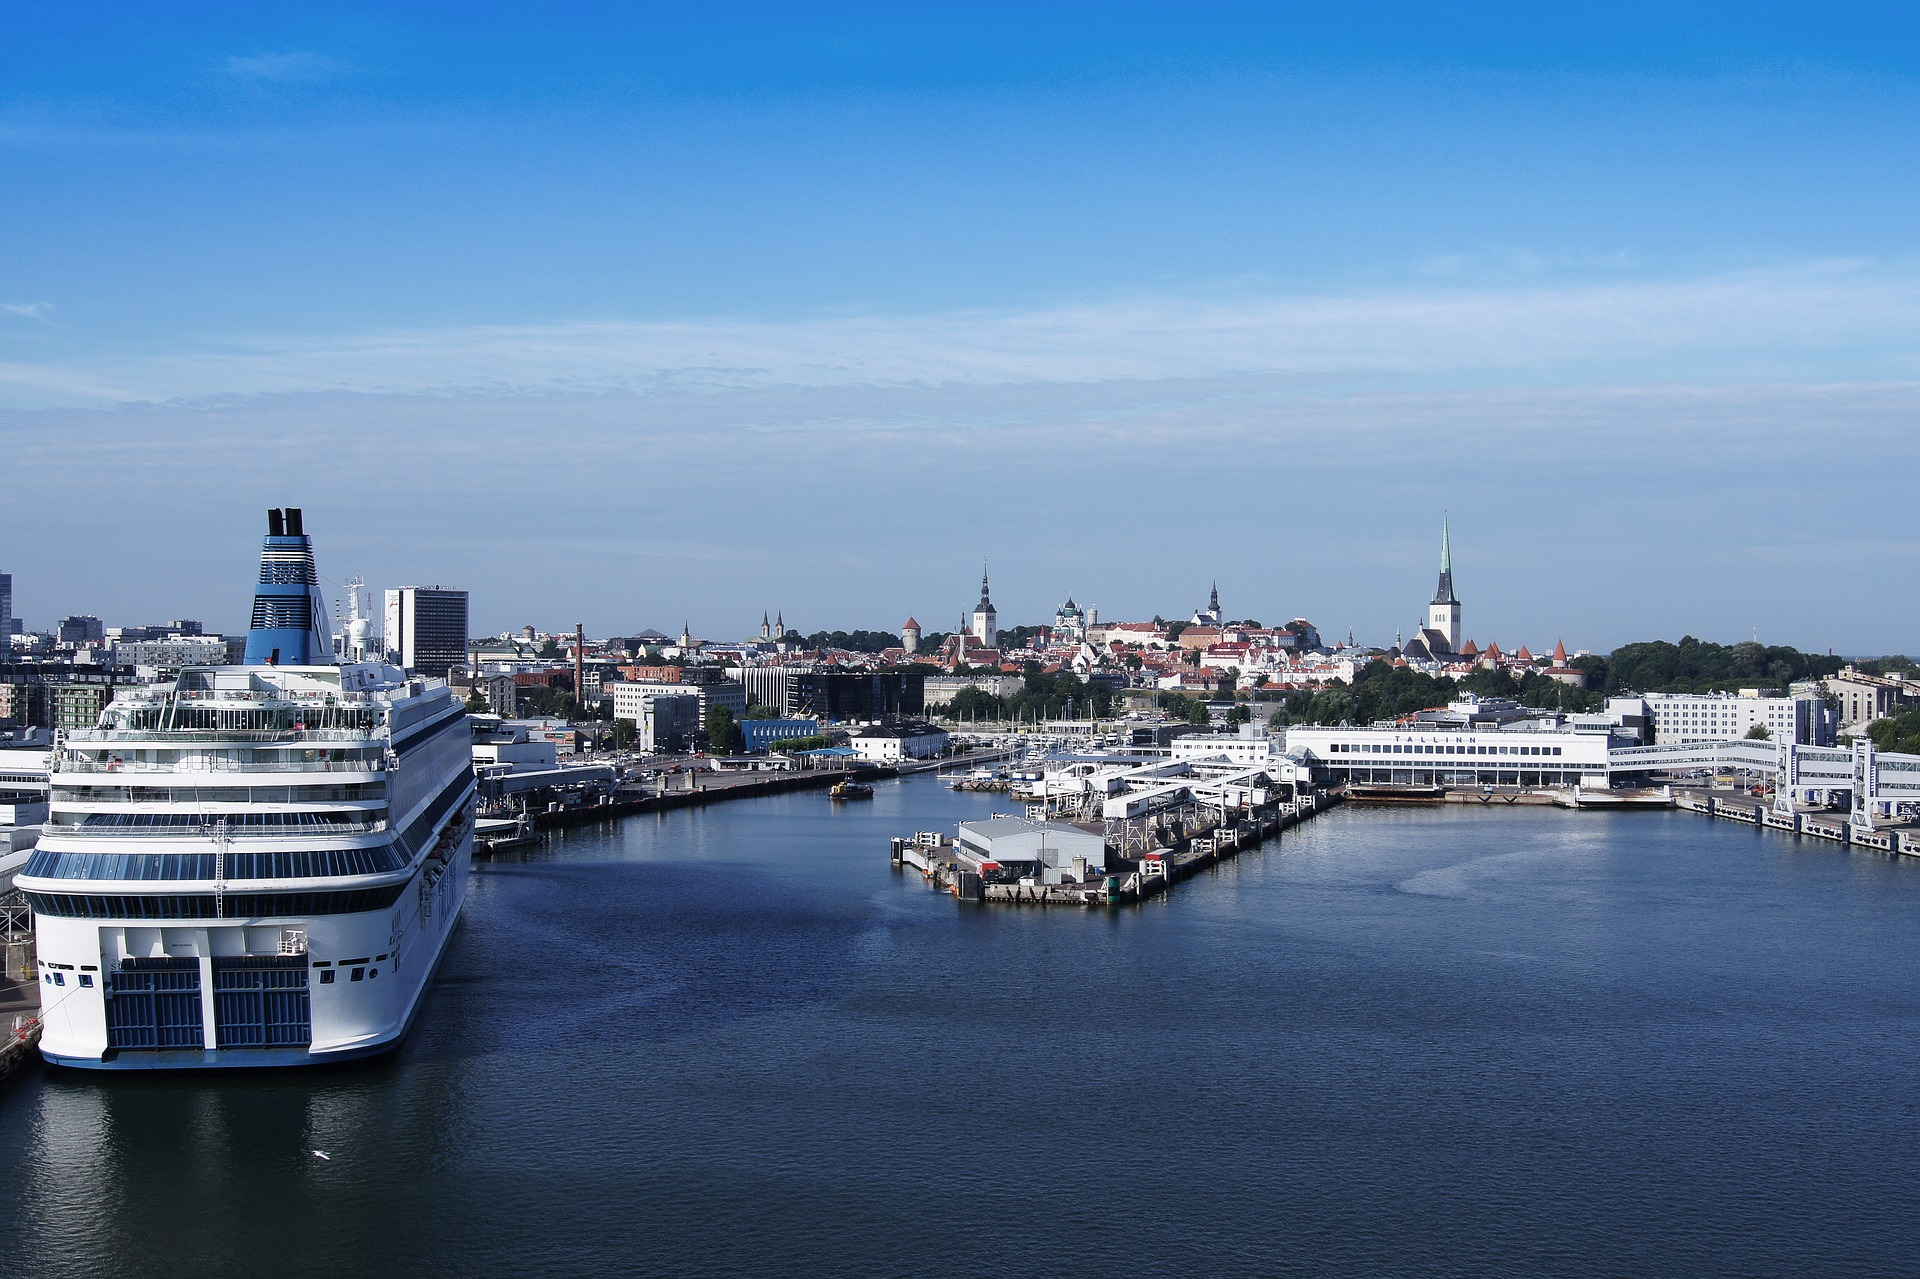 Looking onto the city center of Tallinn from its largest passenger port.